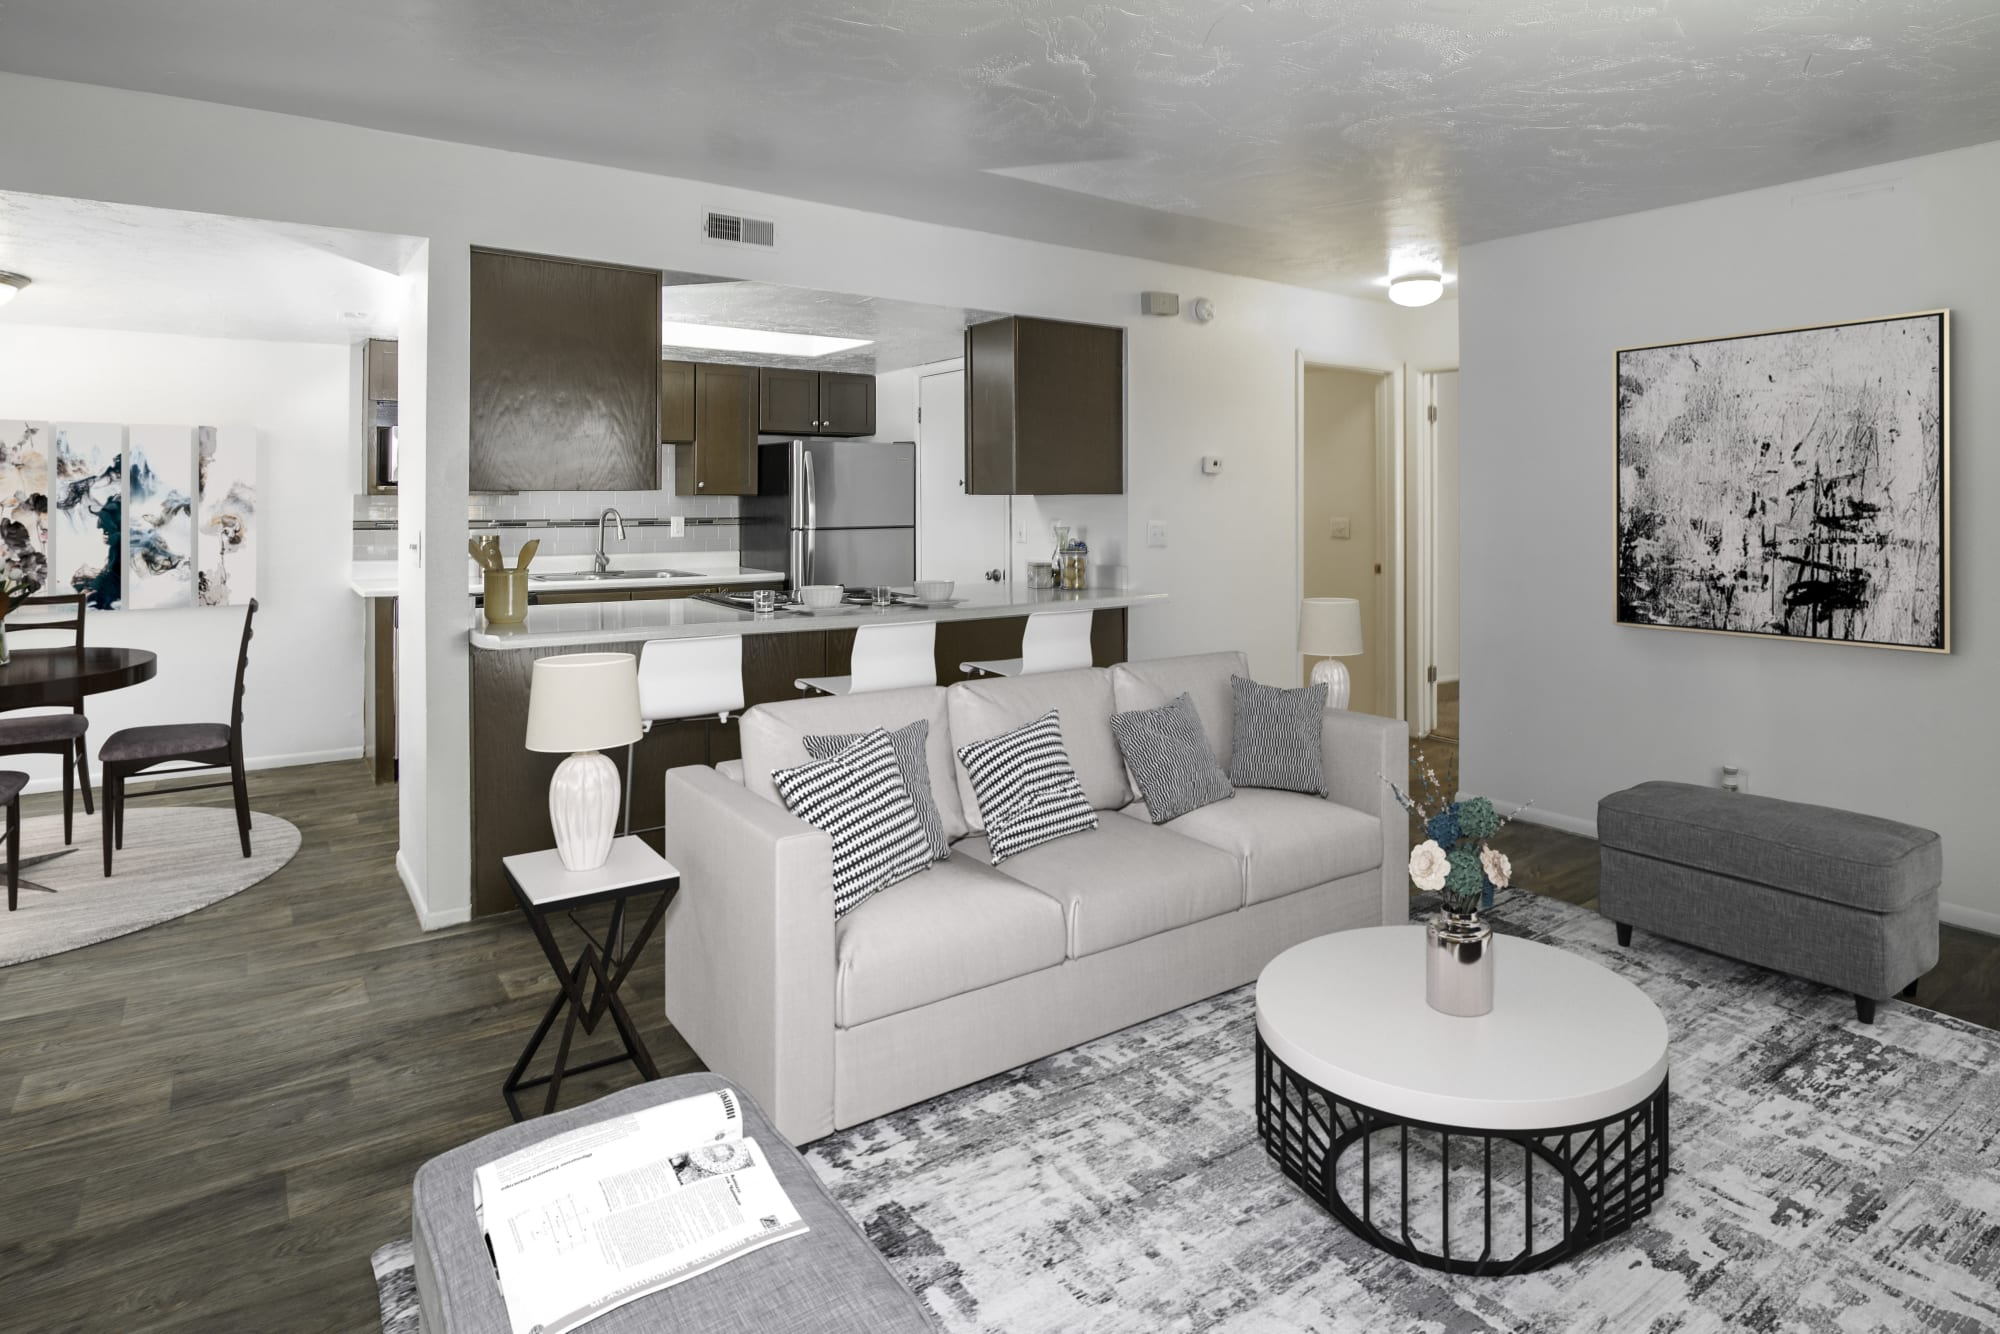 An open floor plan with the kitchen and dining room overlooking the living room at Windgate Apartments in Bountiful, Utah